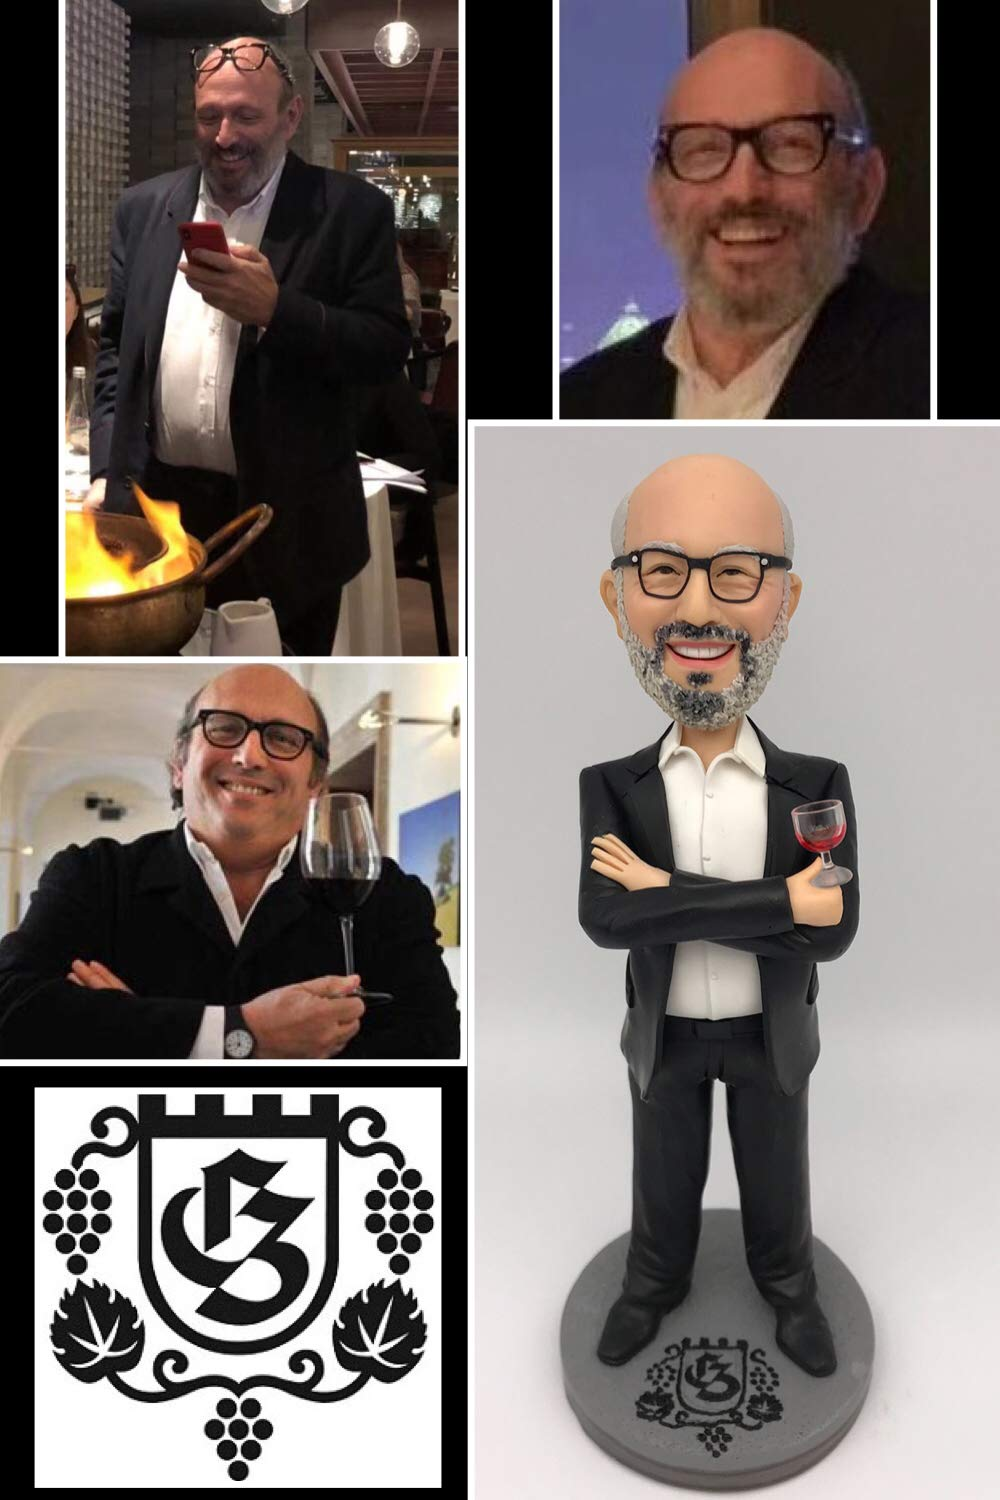 Fully Custom Bobblehead Figurine Personalized Boss Gift Husband Gift Retirement Gifts Based on Your Photos for New Year, One person, DHL Expedited Shipping Service